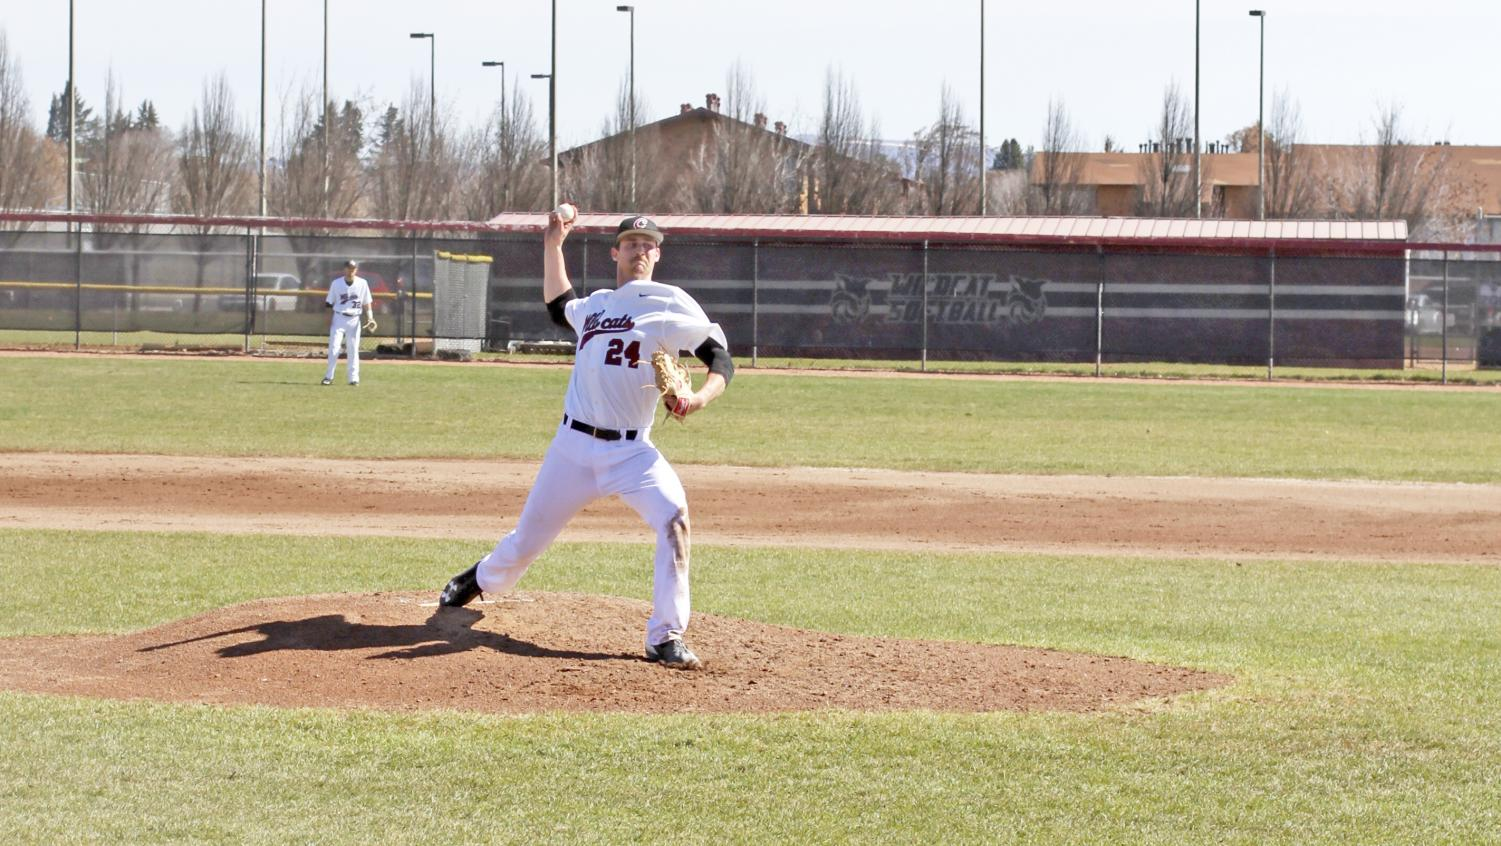 Jacob Forrester winds up a pitch during a game during last season.